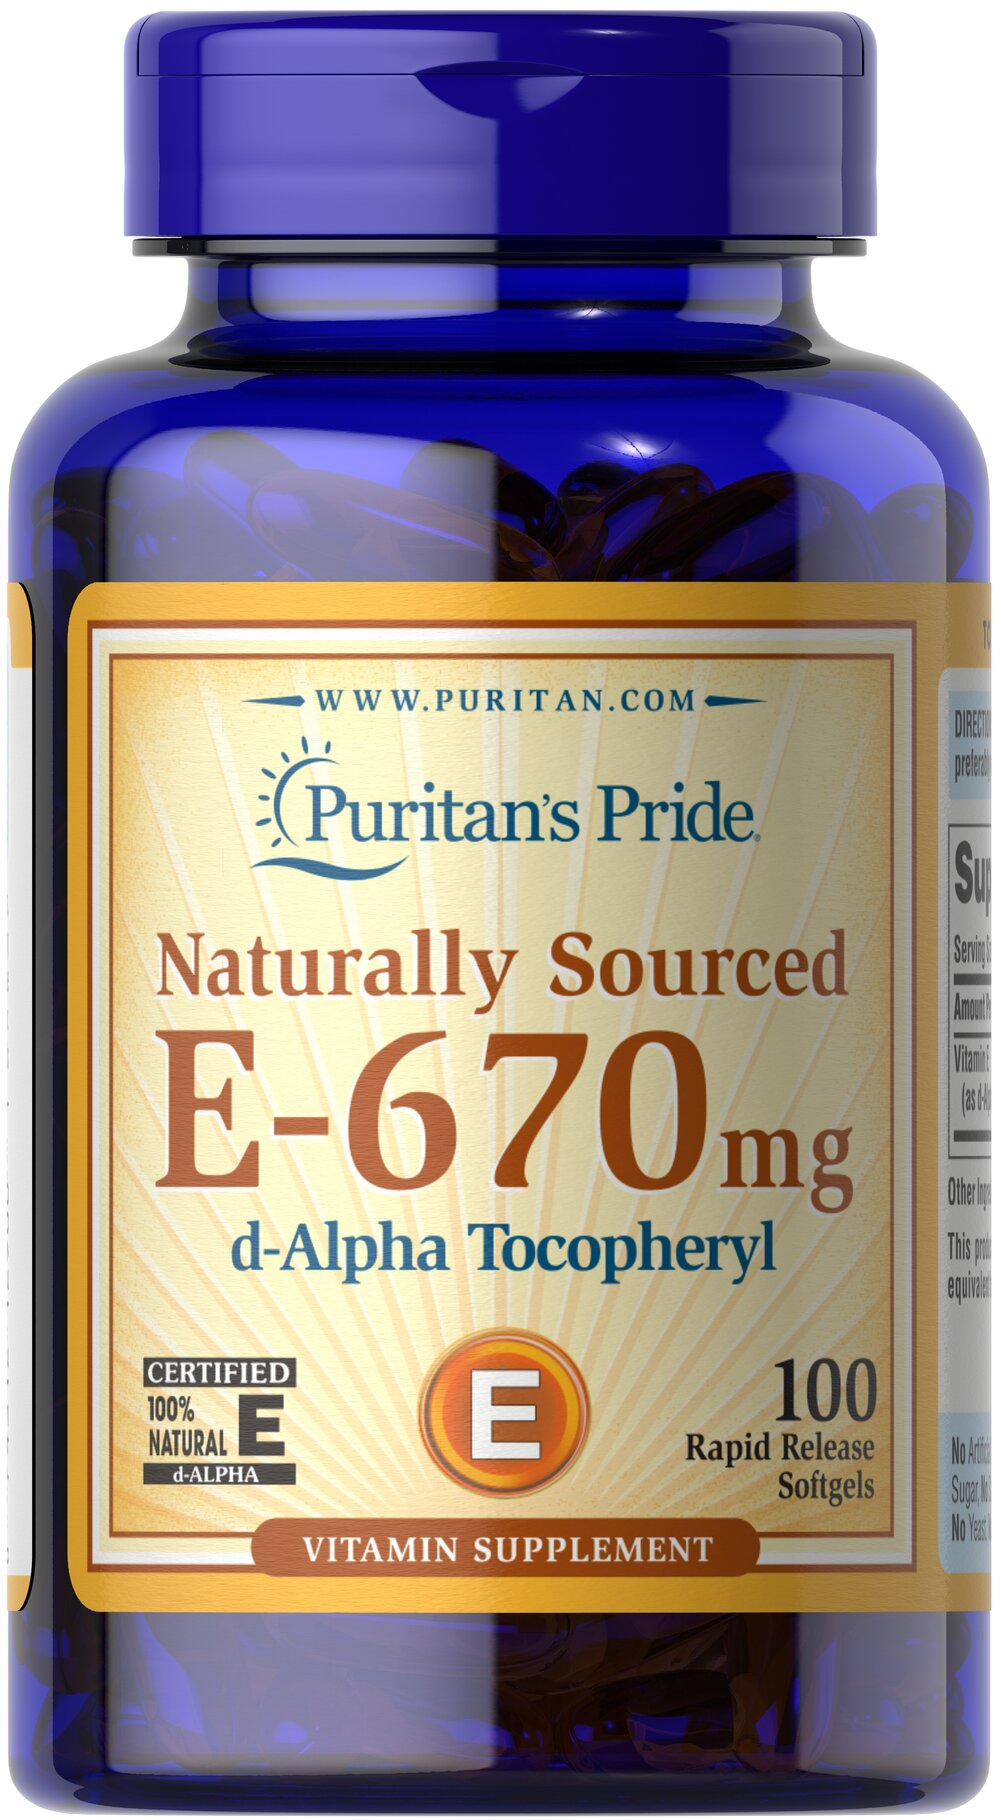 Vitamin E-100% 1000 IU Natural <p><b>Vitamin E</b> is a potent antioxidant that helps fight free radicals.** Studies have shown that oxidative stress caused by free radicals may contribute to the premature aging of cells.** Vitamin E also promotes immune function and helps support cardiovascular health.** Our Vitamin E is 100% natural and comes in a convenient to use softgel.</p> 100 Softgels 1000 IU $42.99